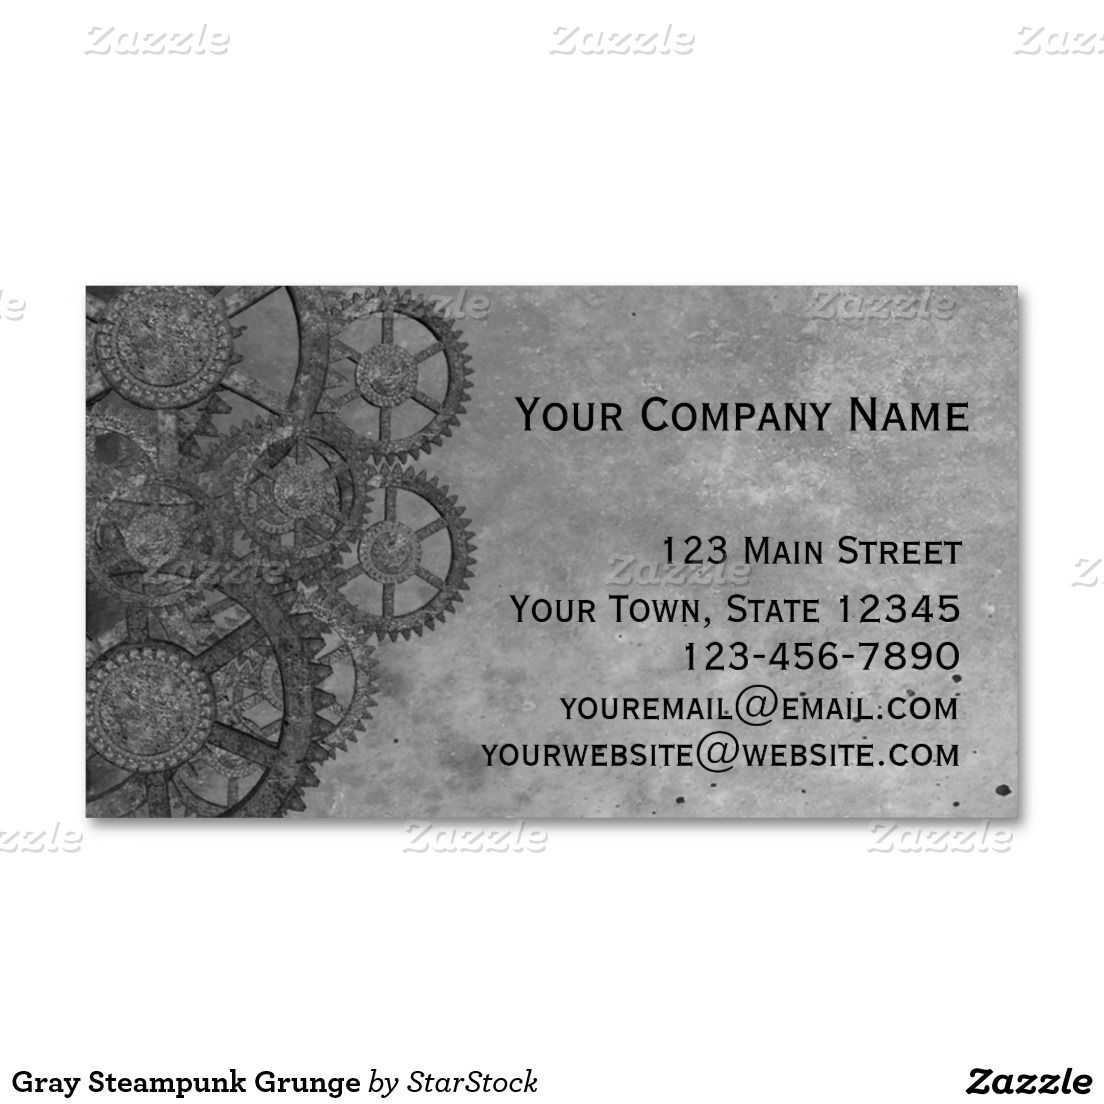 Gray Steampunk Grunge Business Card | Grunge, Business cards and ...